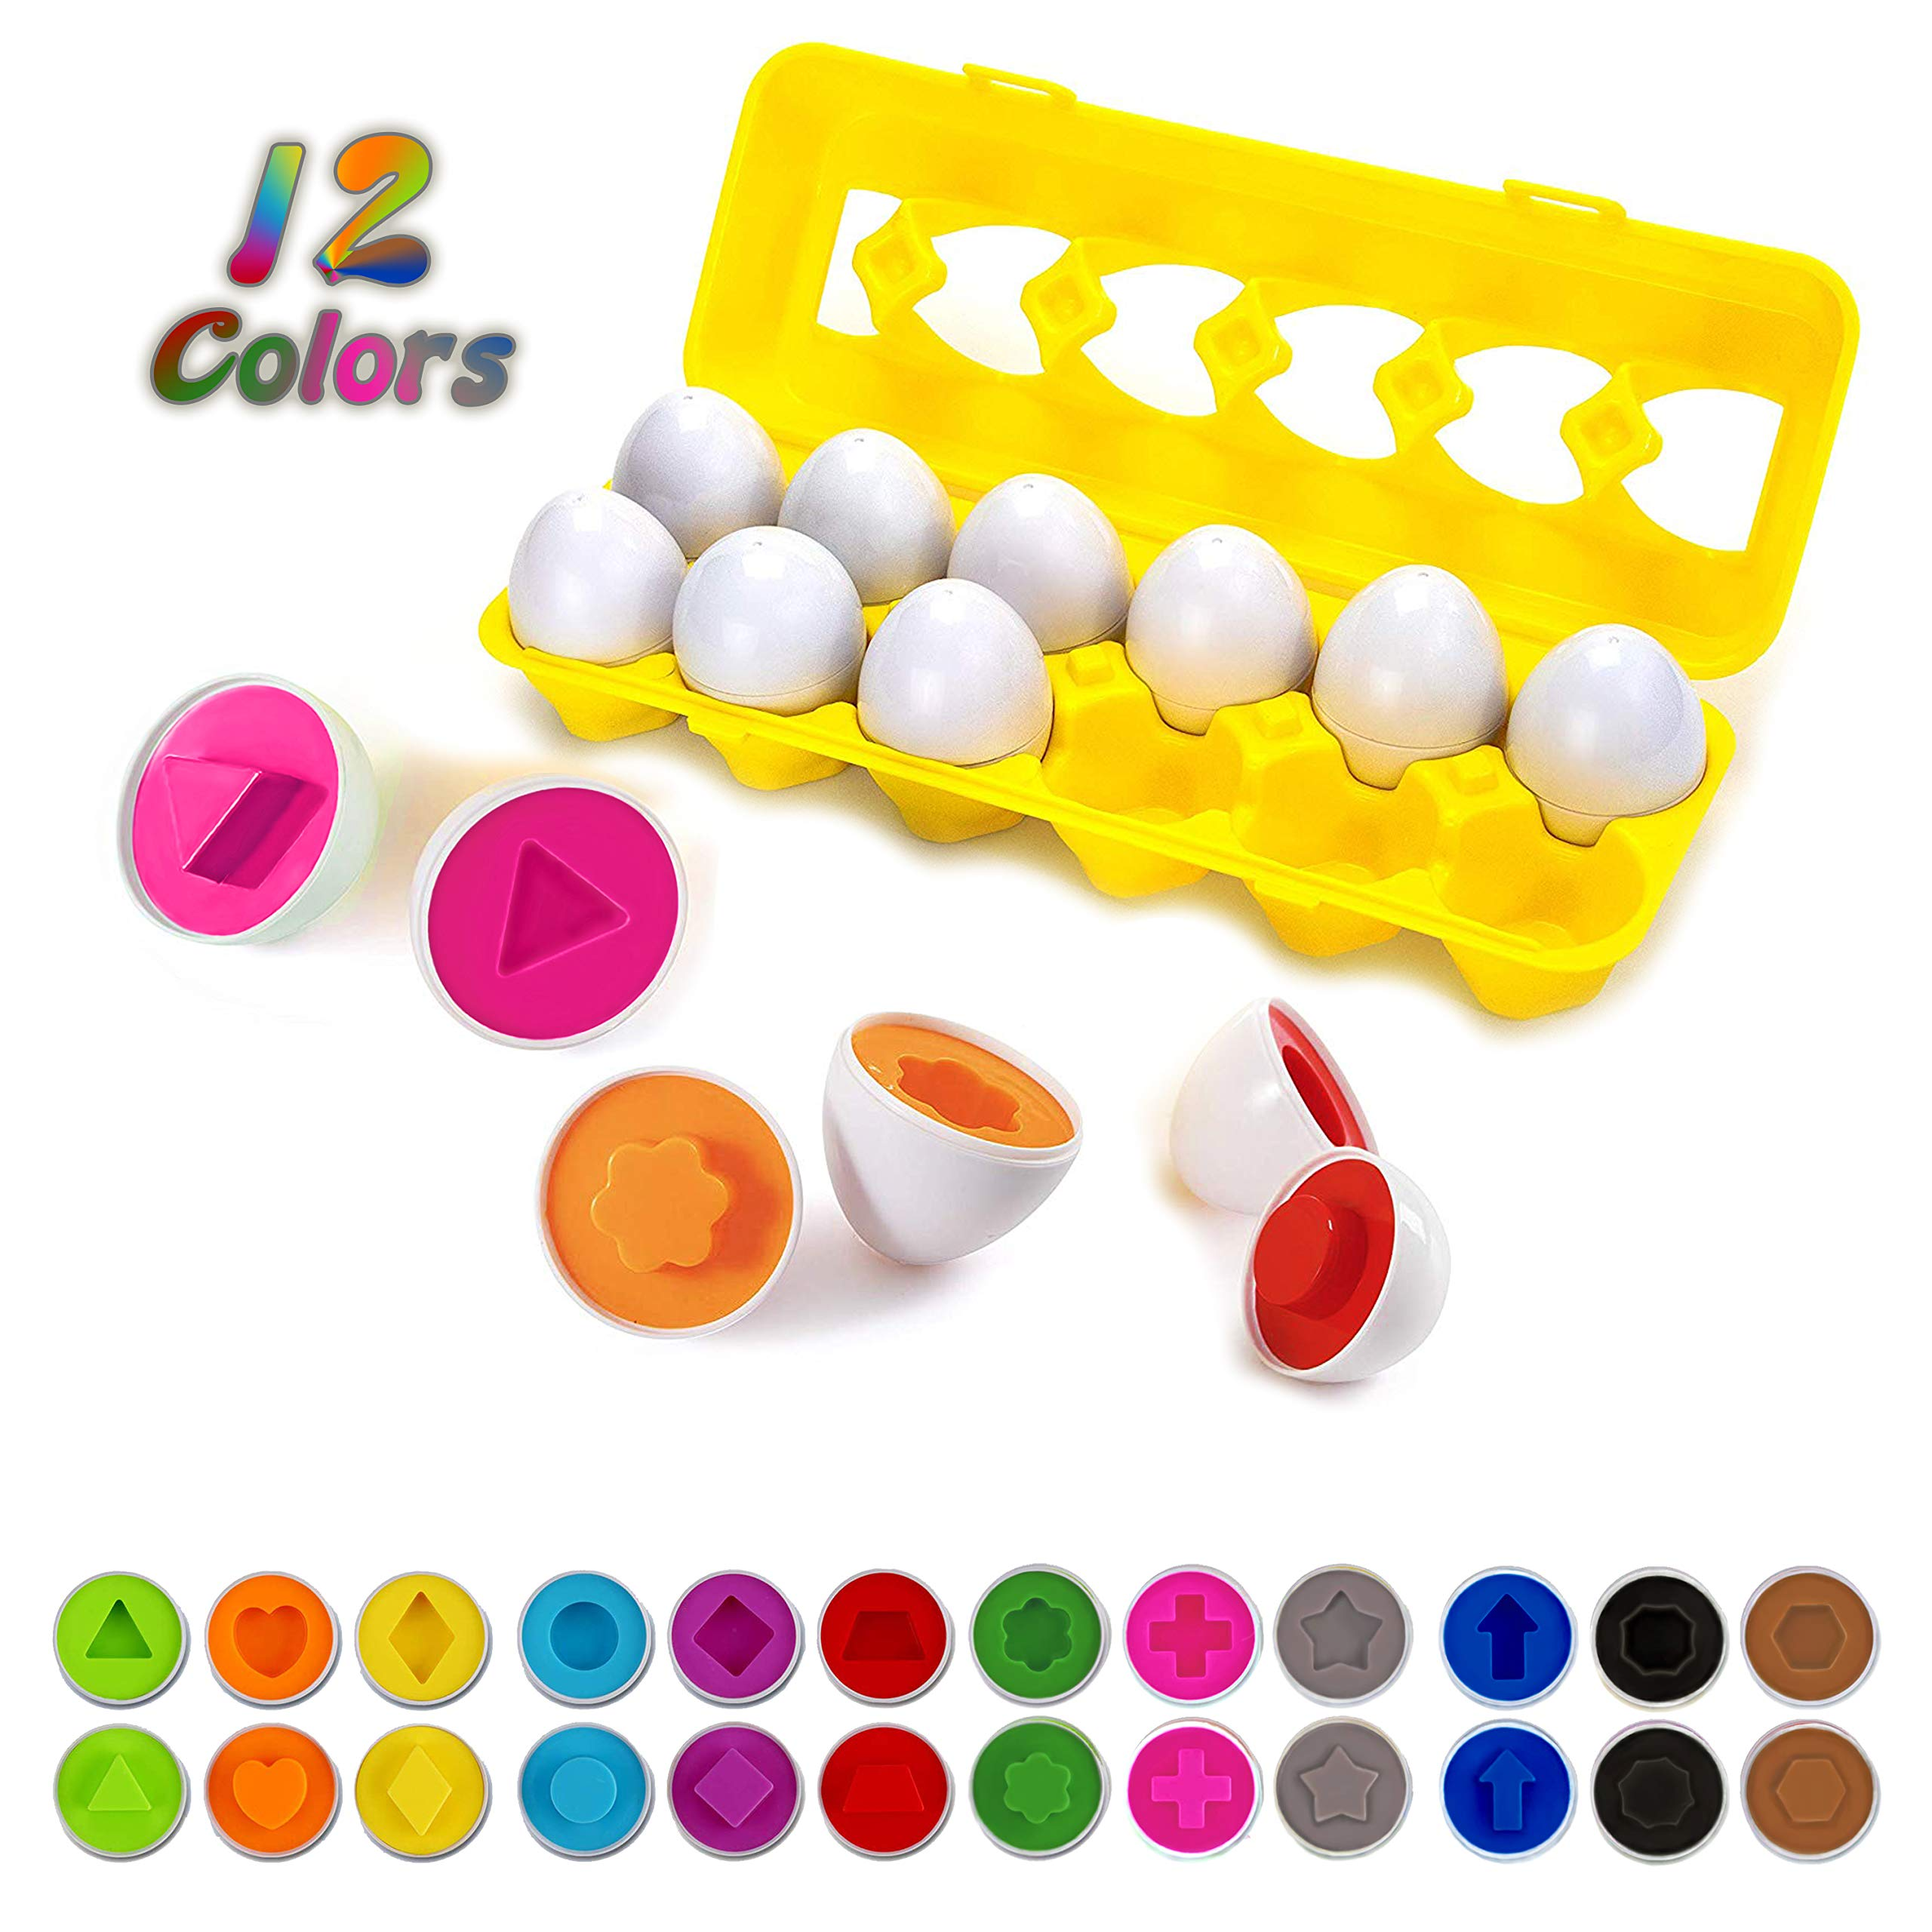 Color Shapes Matching Egg Toy